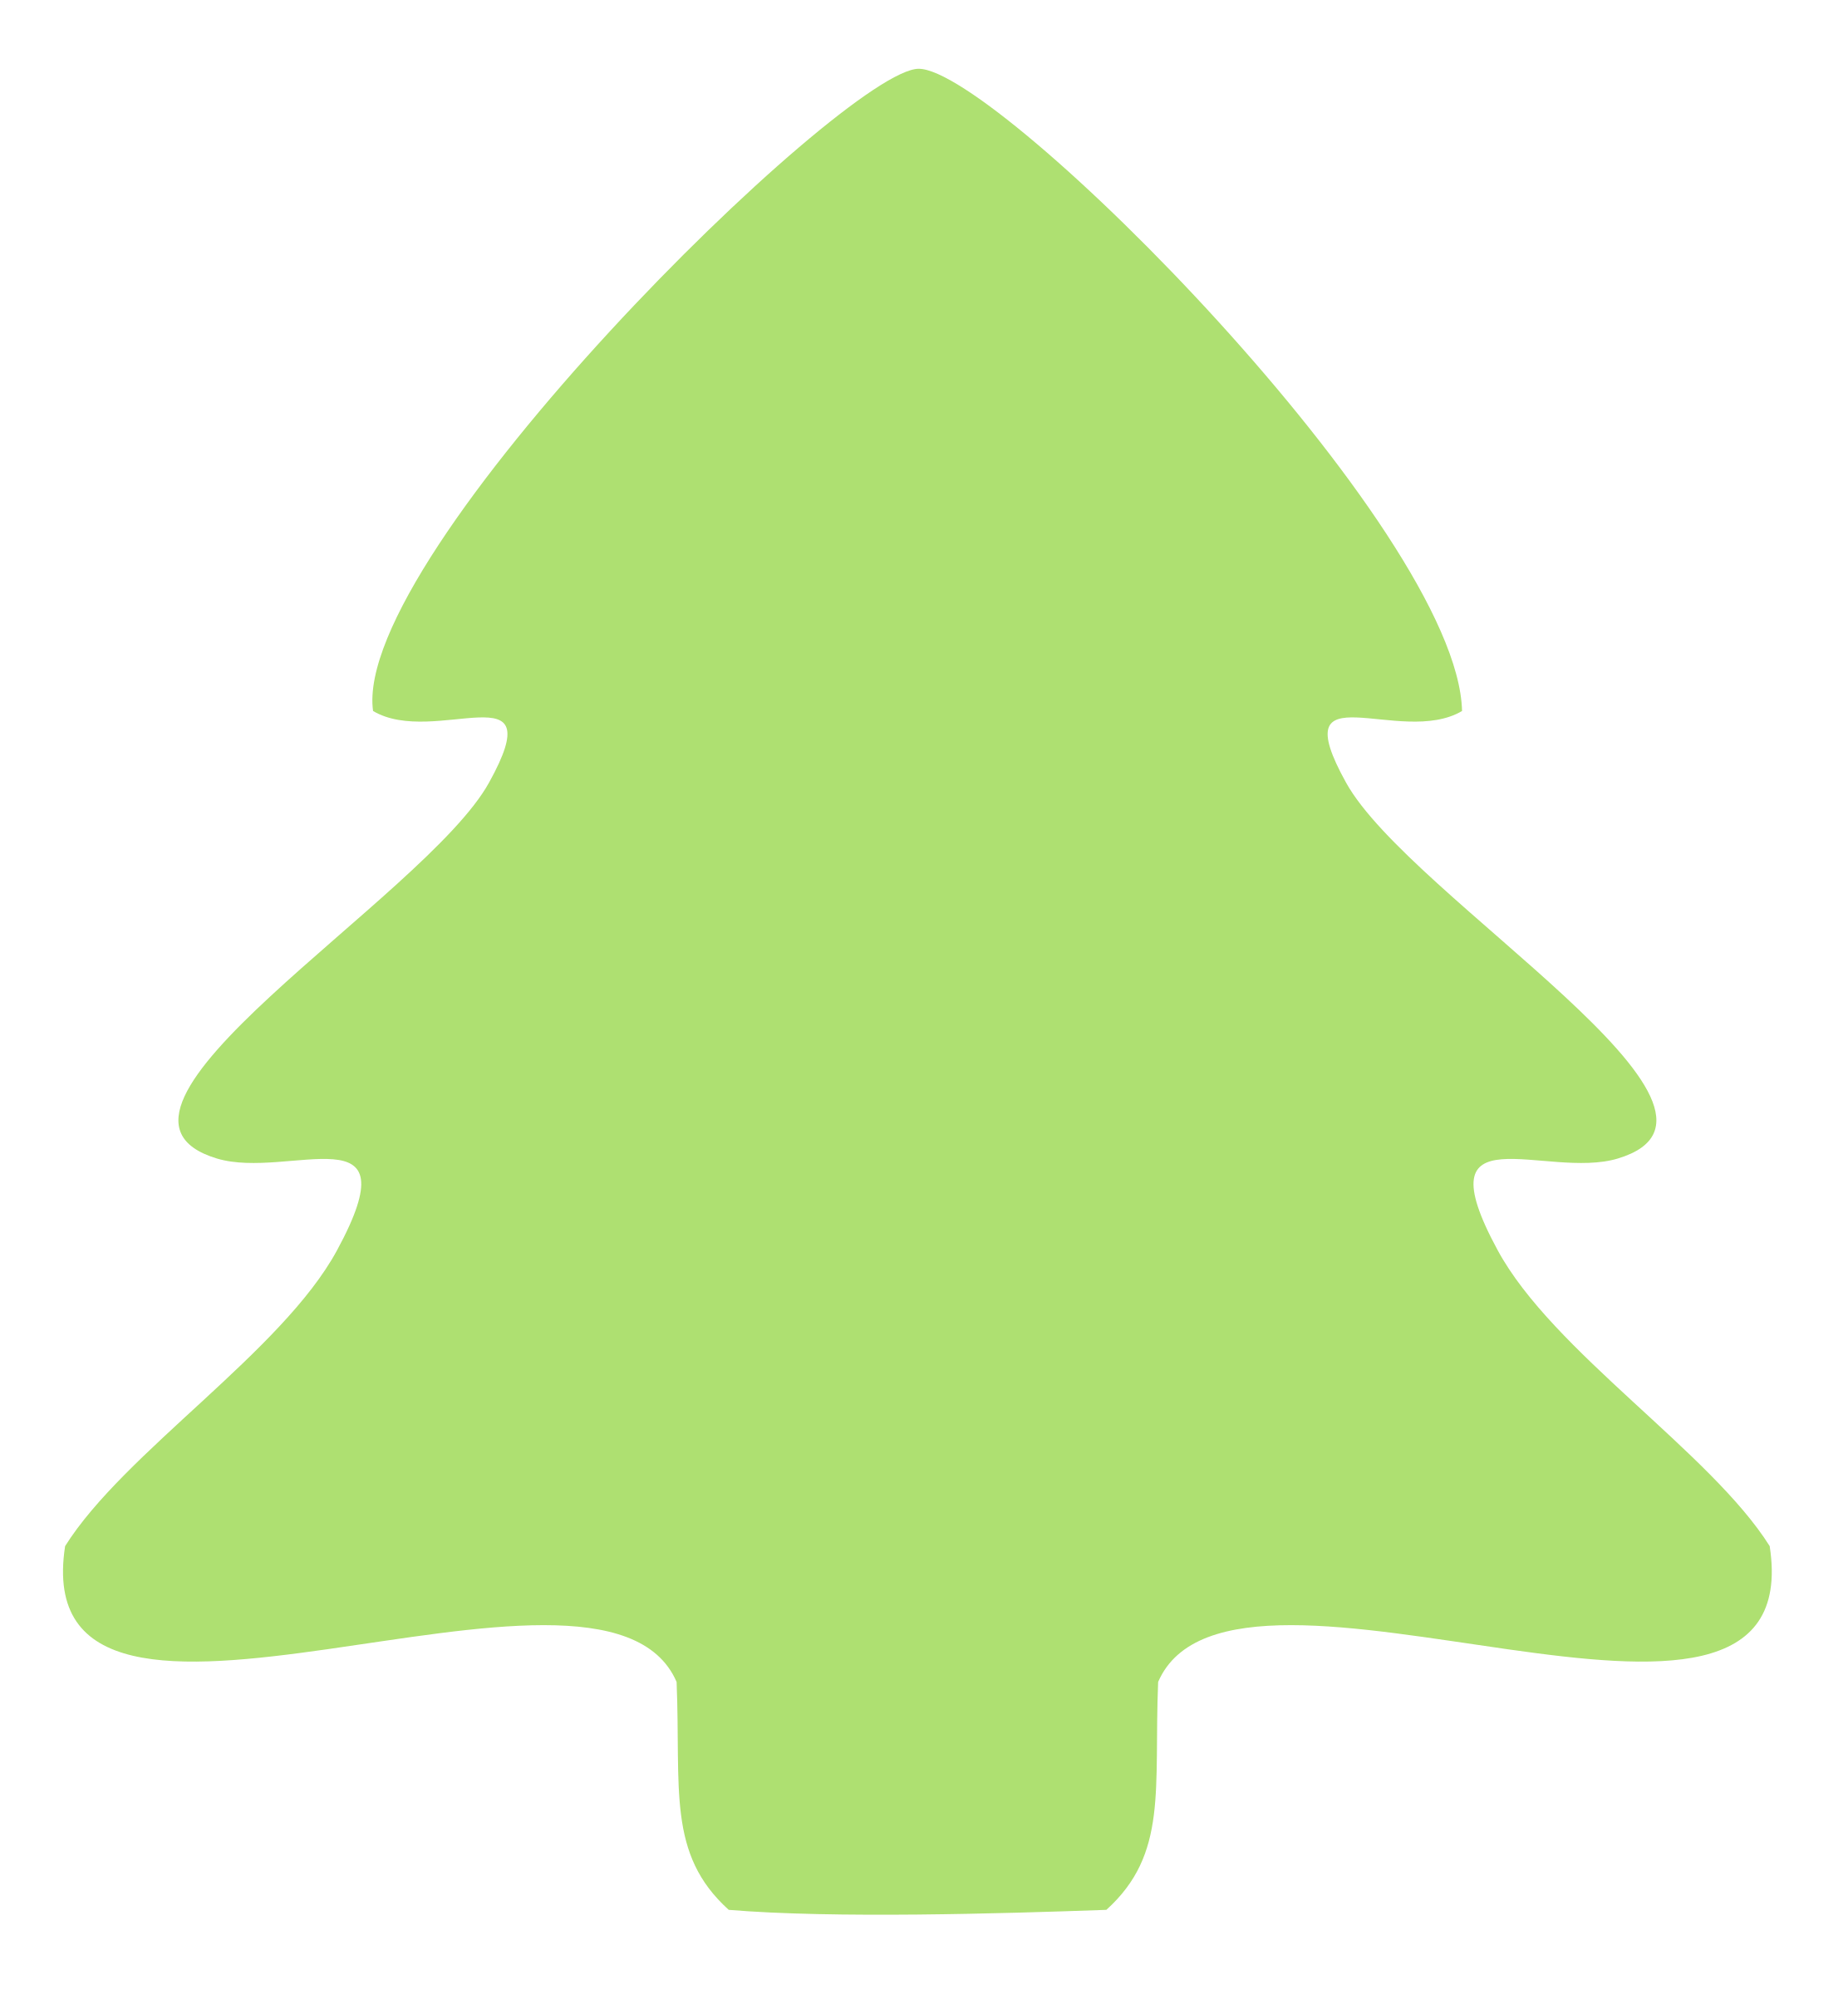 Clipart christmas tree image transparent Clipart - christmas tree icon image transparent